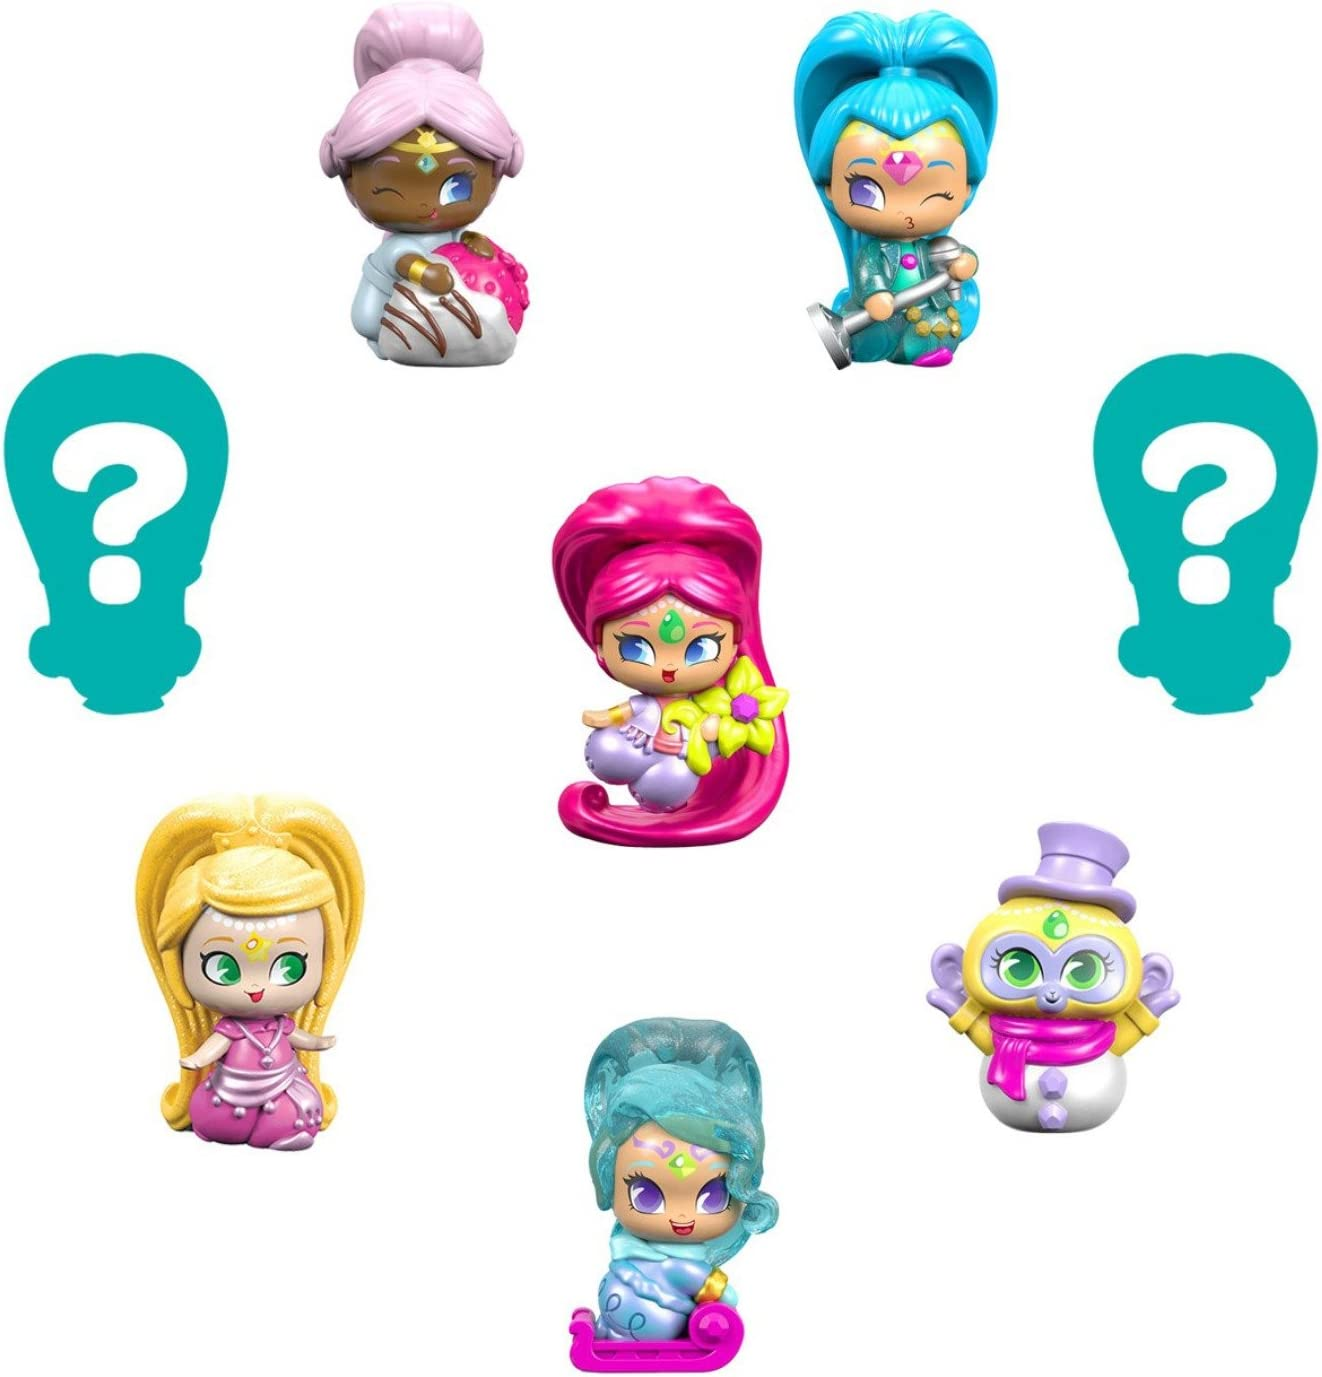 #8 8 Pack Teenie Genies Fisher-Price Nickelodeon Shimmer /& Shine Series 2 Genie